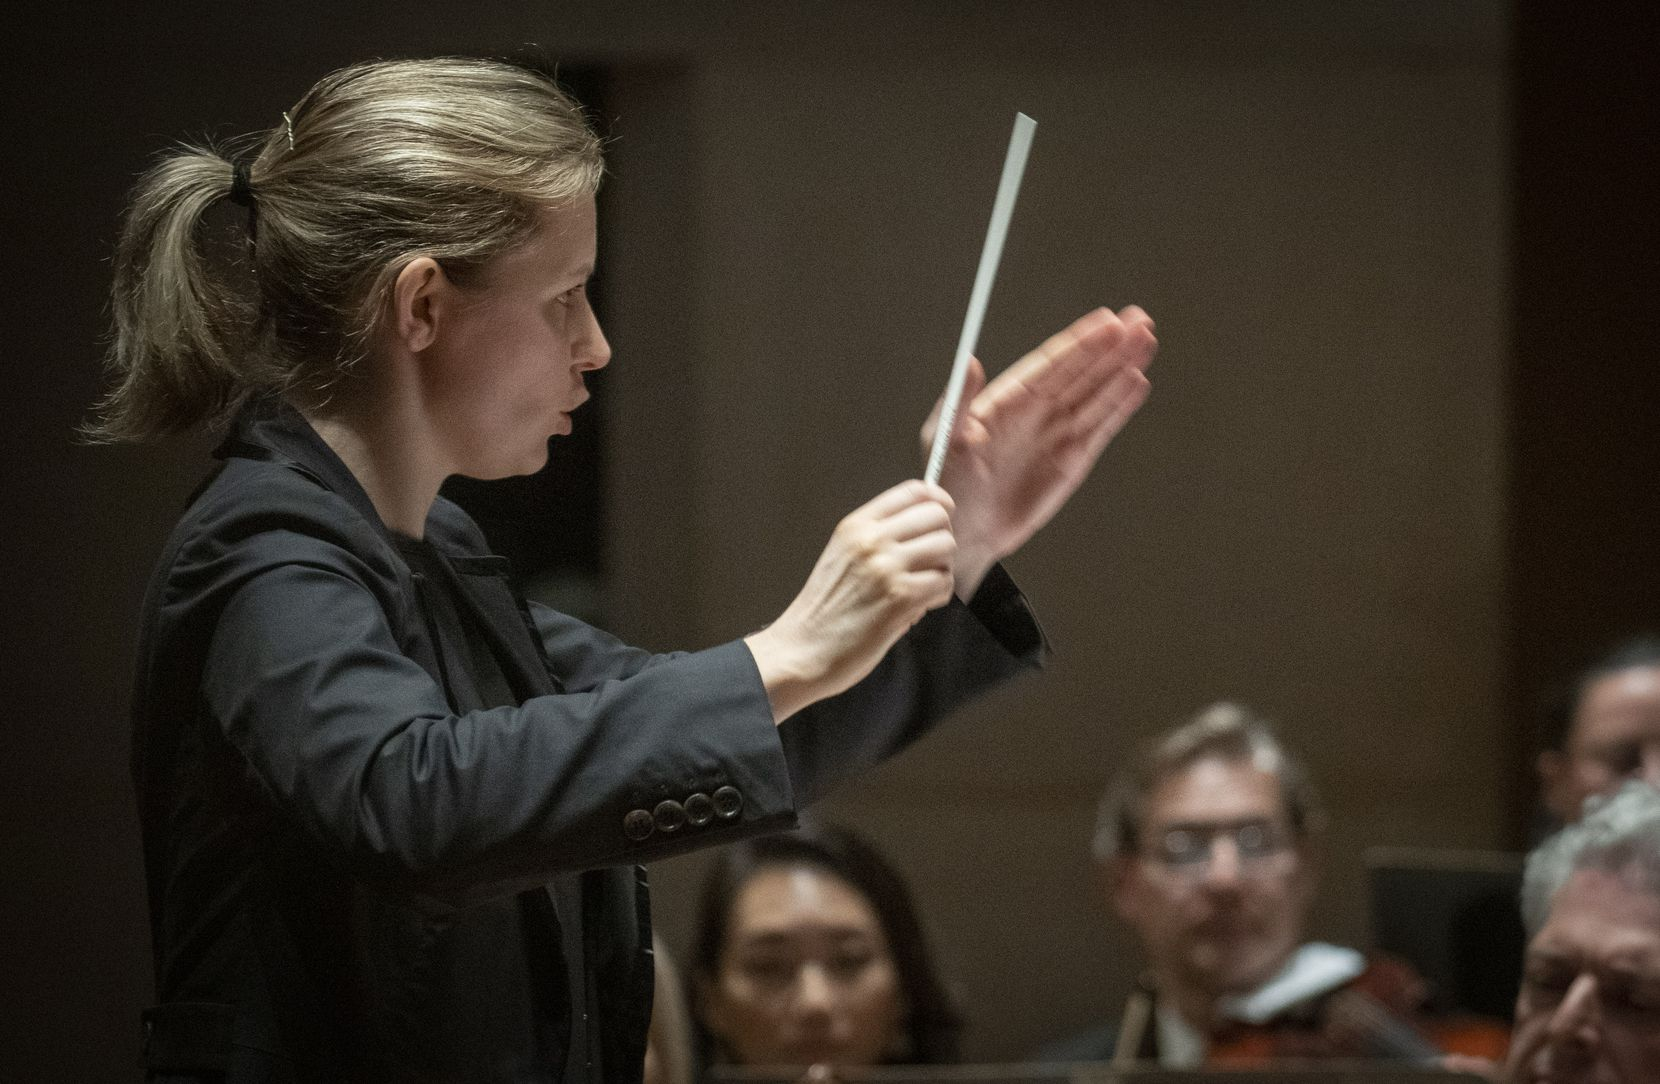 Gemma New, the DSO's principal guest conductor, will conduct a performance of Rachmaninoff's Symphonic Dances on March 6-8.